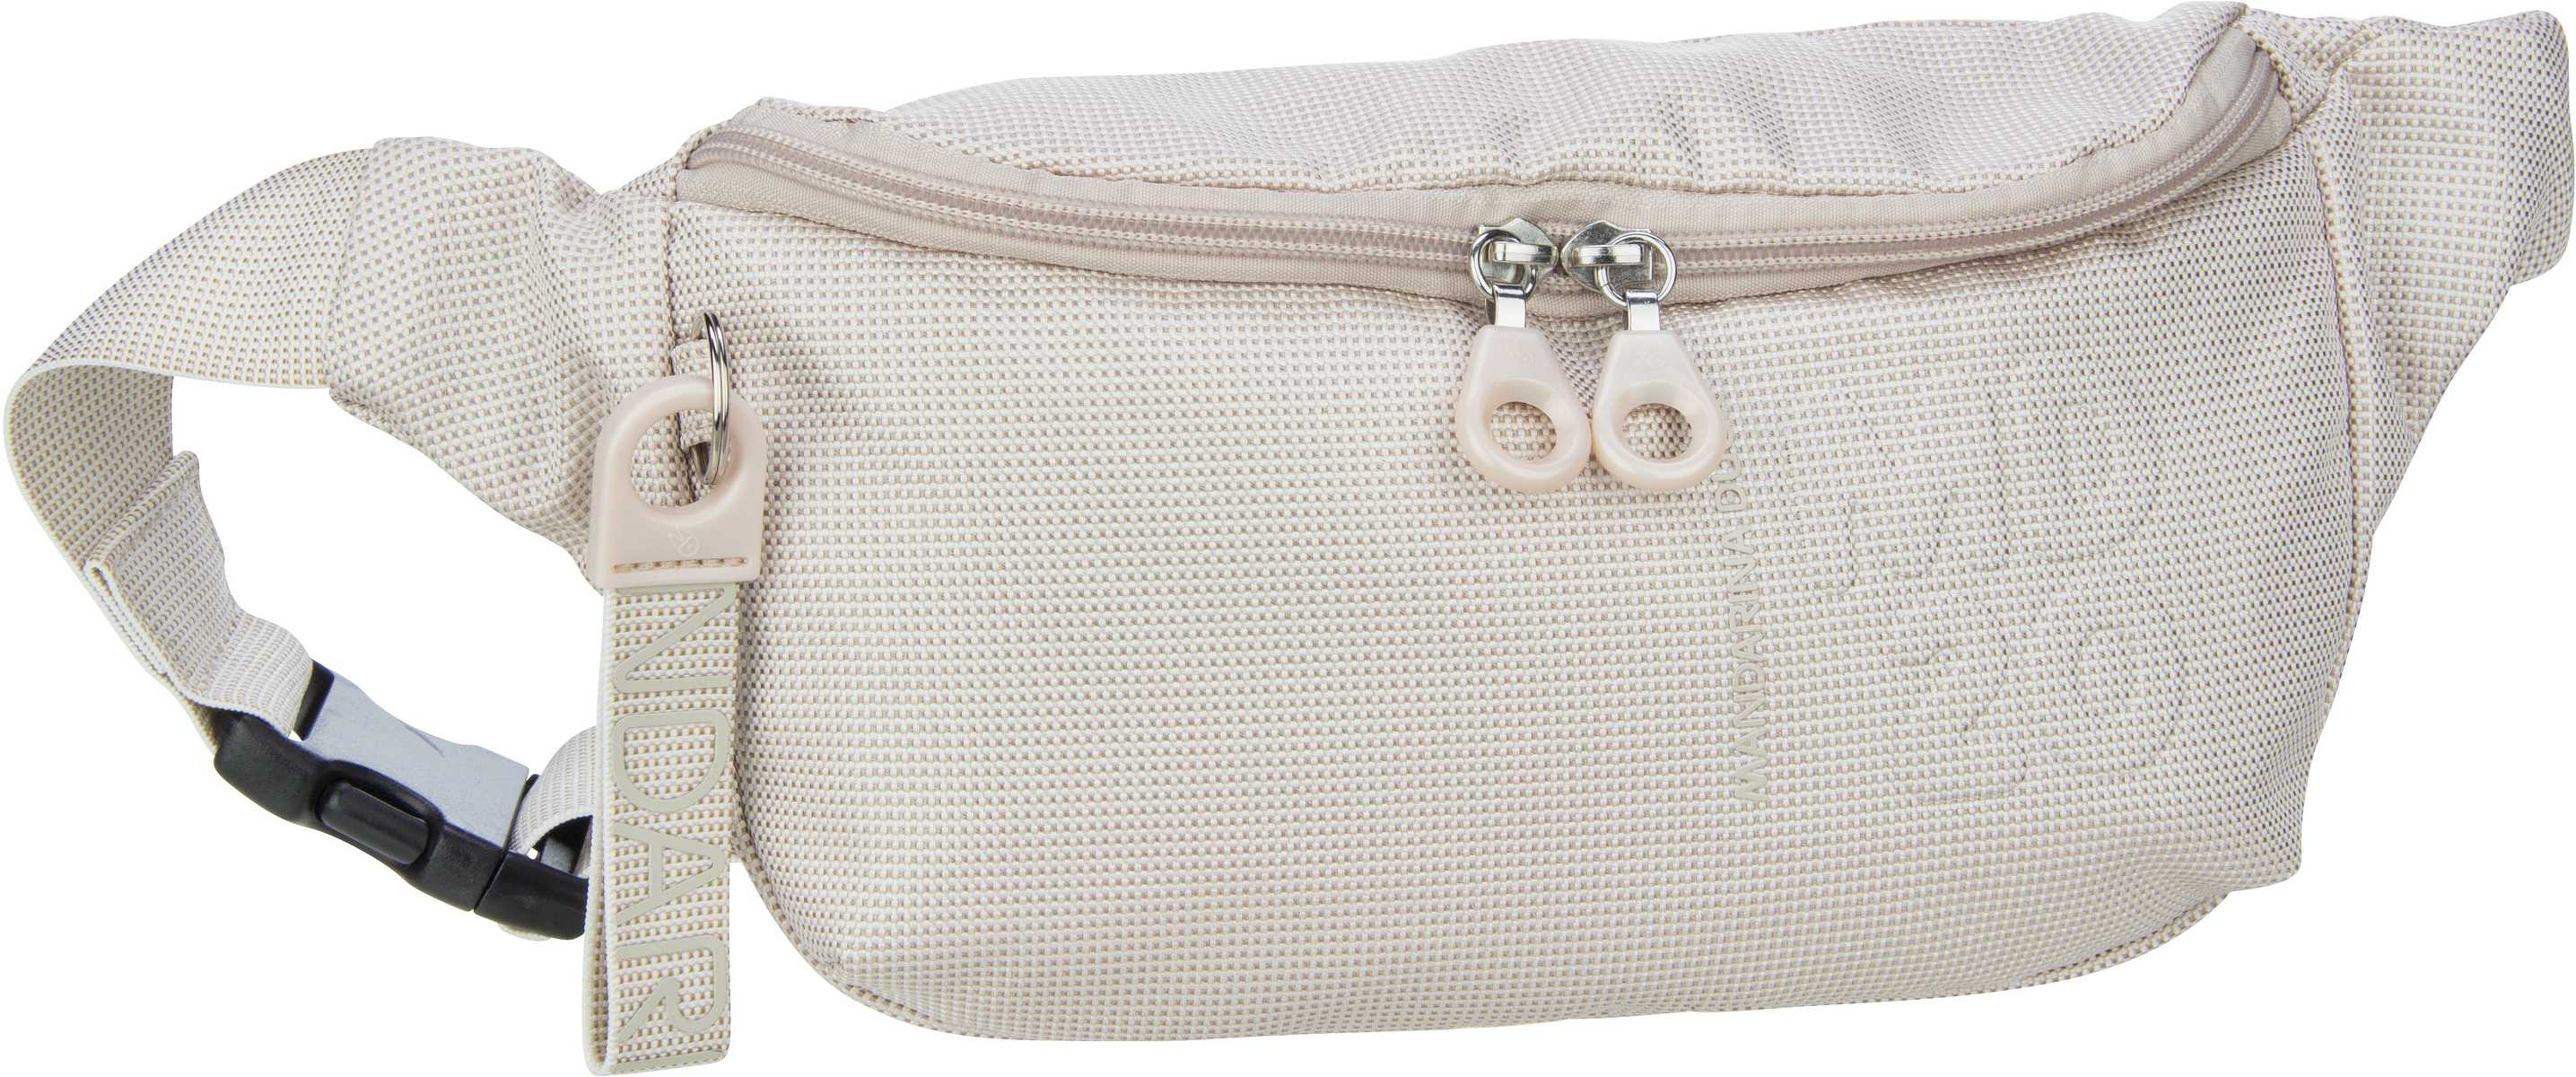 mandarina duck -  Gürteltasche MD20 Bum Bag QMMM3 Off White